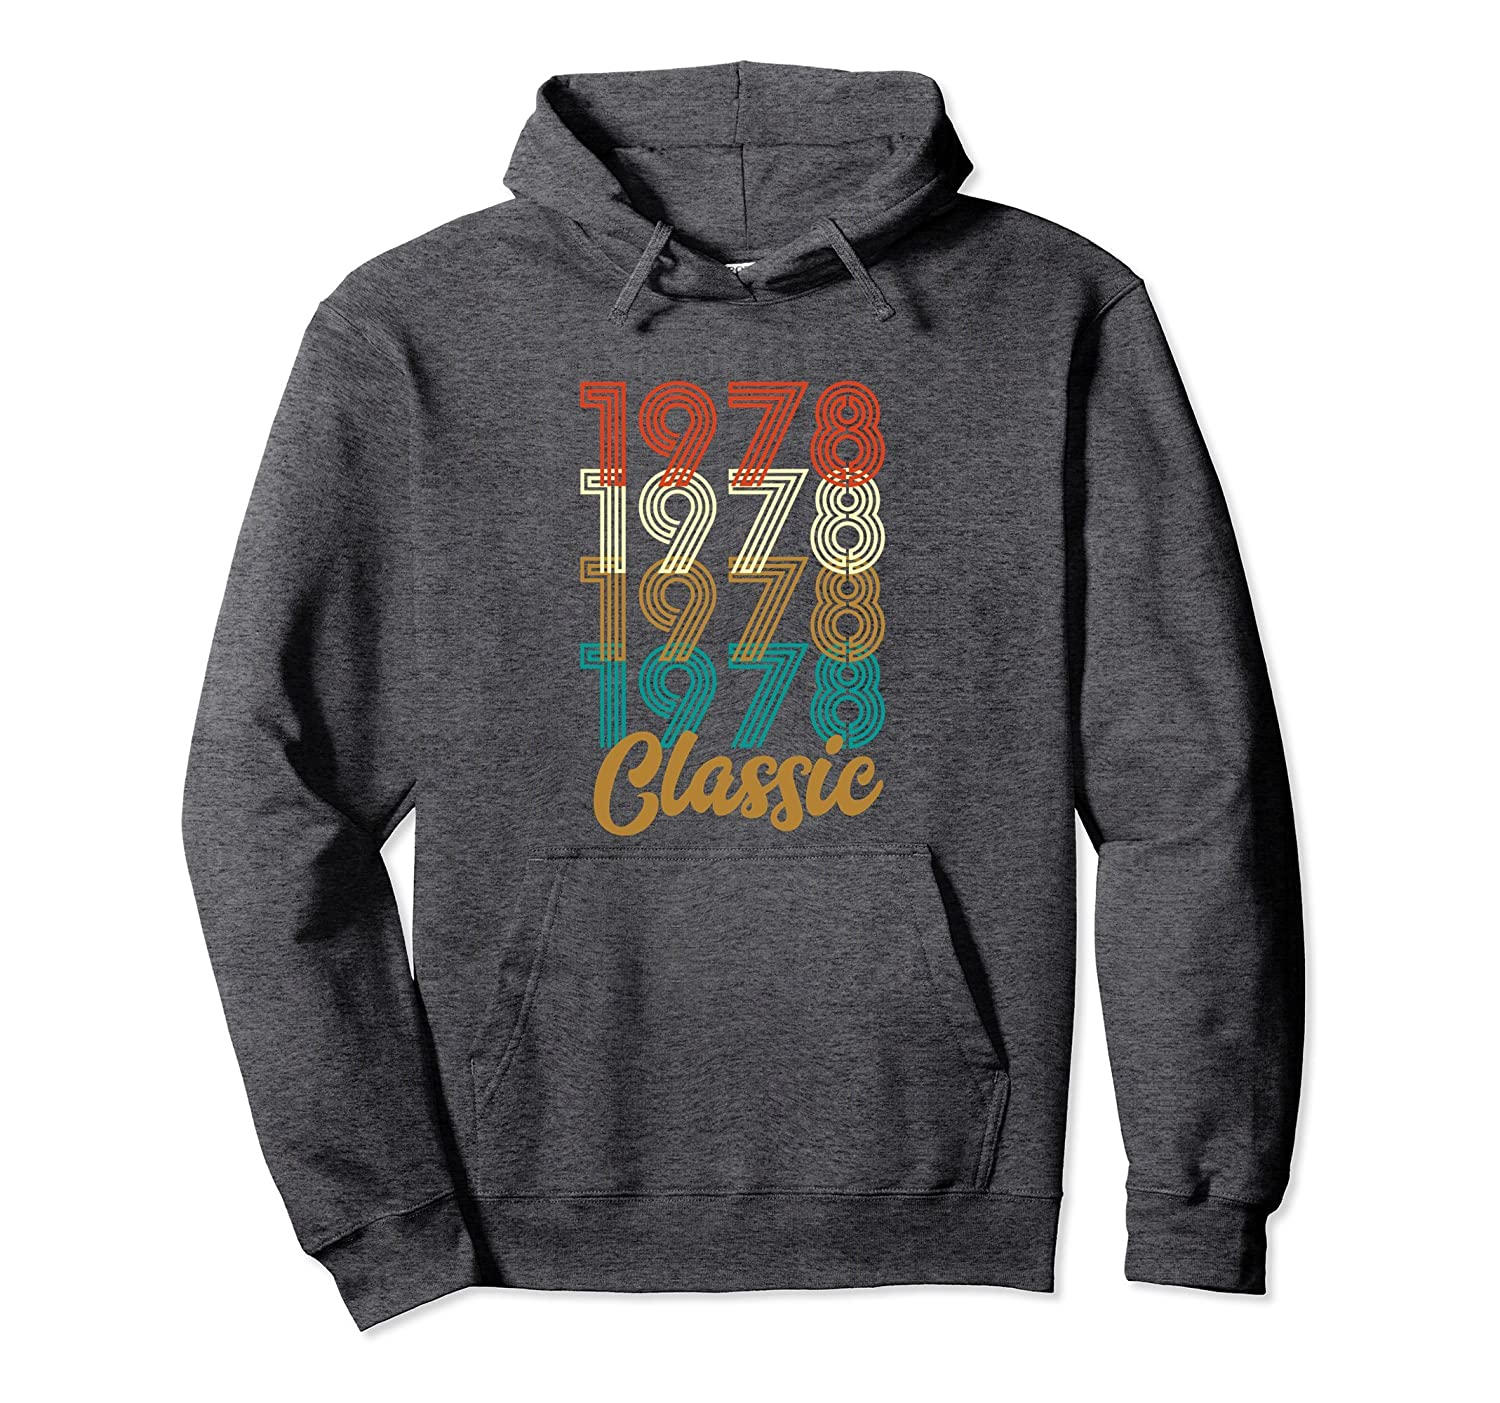 1978 Classic 40th Birthday Gift Pullover Hoodie-TH